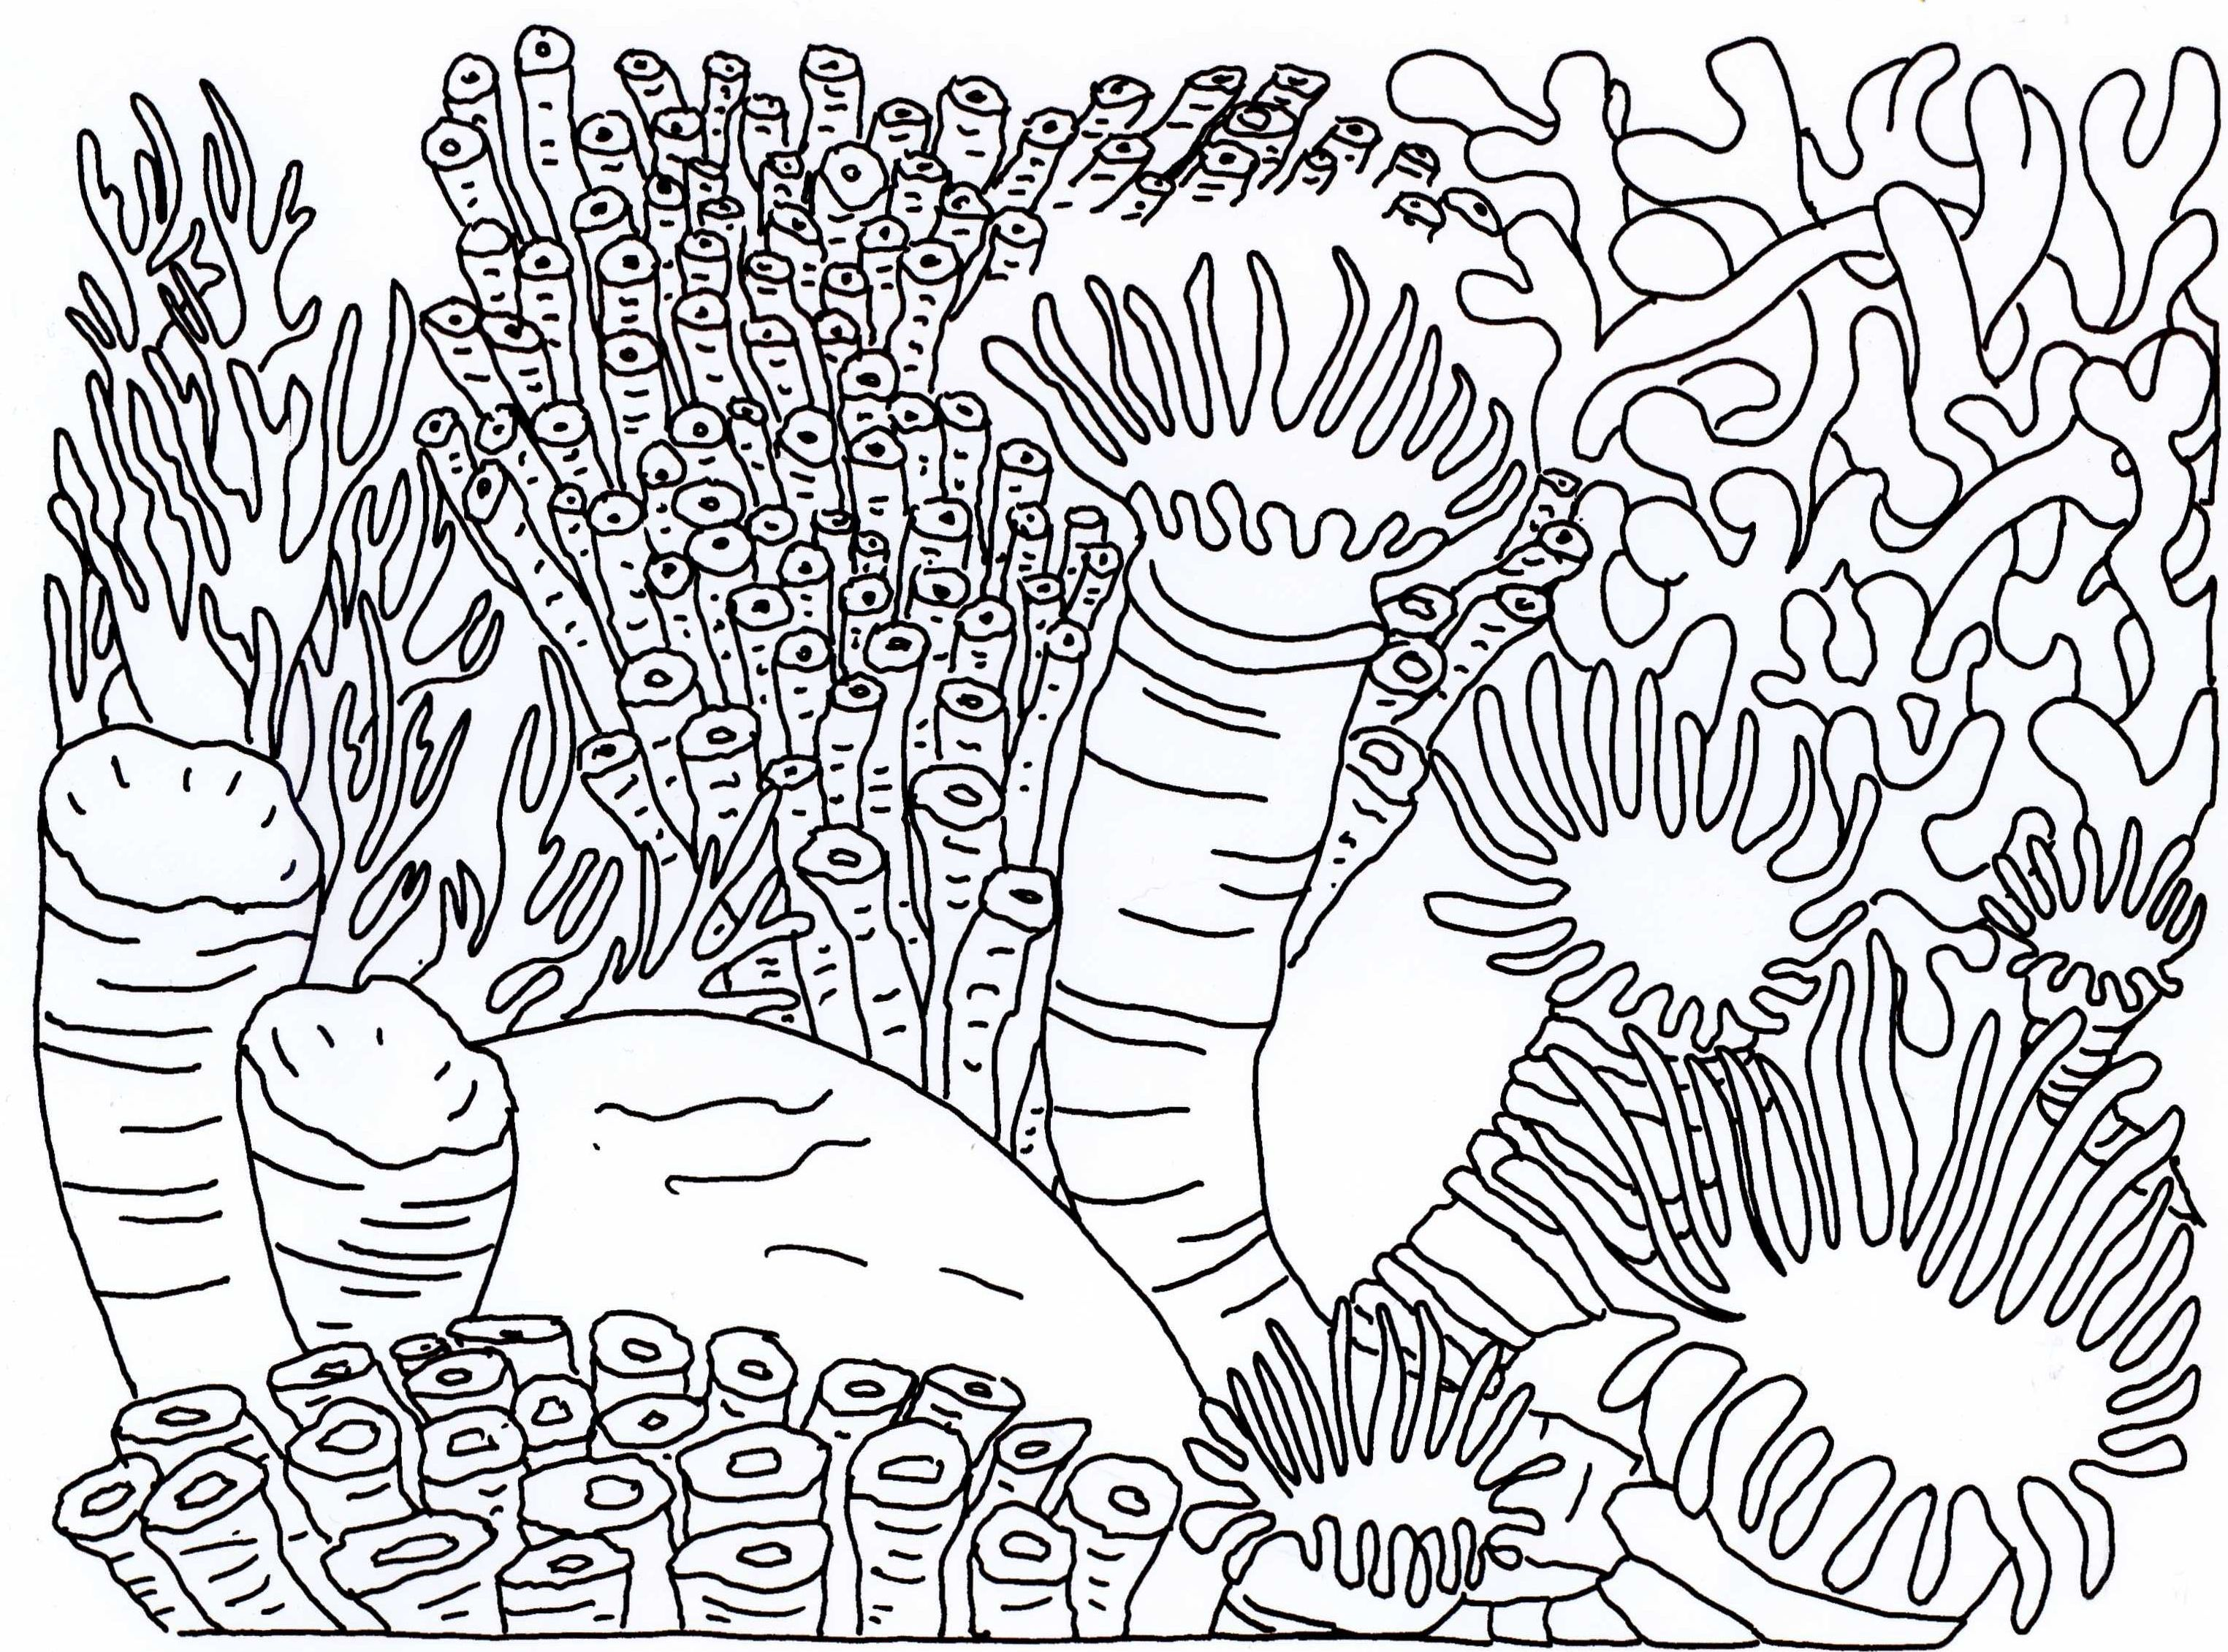 Coral reef coloring pages to download and print for free for Coloring pages of coral reefs